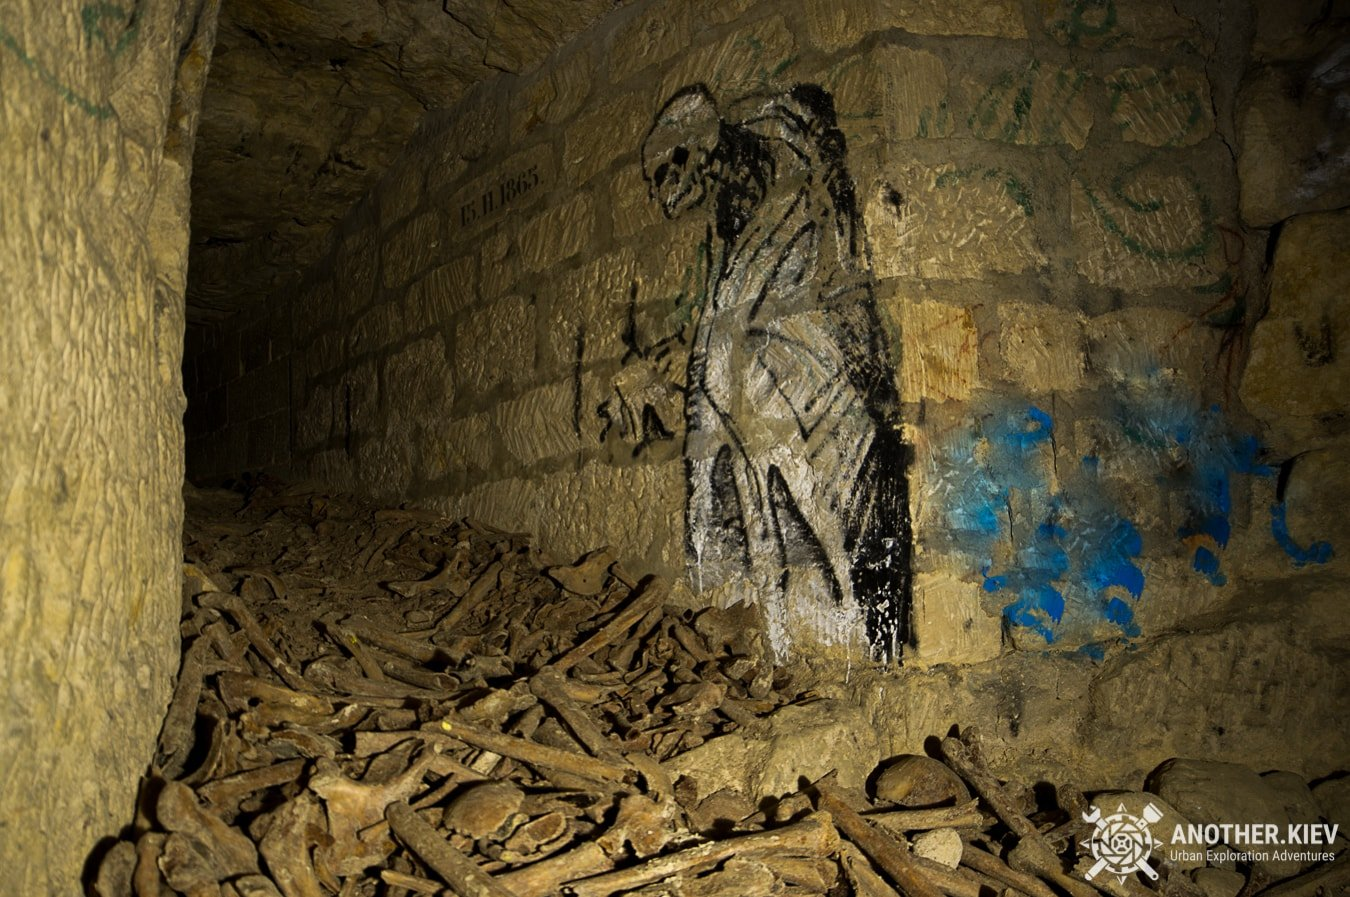 paris-catacombs-dark-urbex-tour-exploring-ossuarium PARIS CATACOMBS DARK TOUR